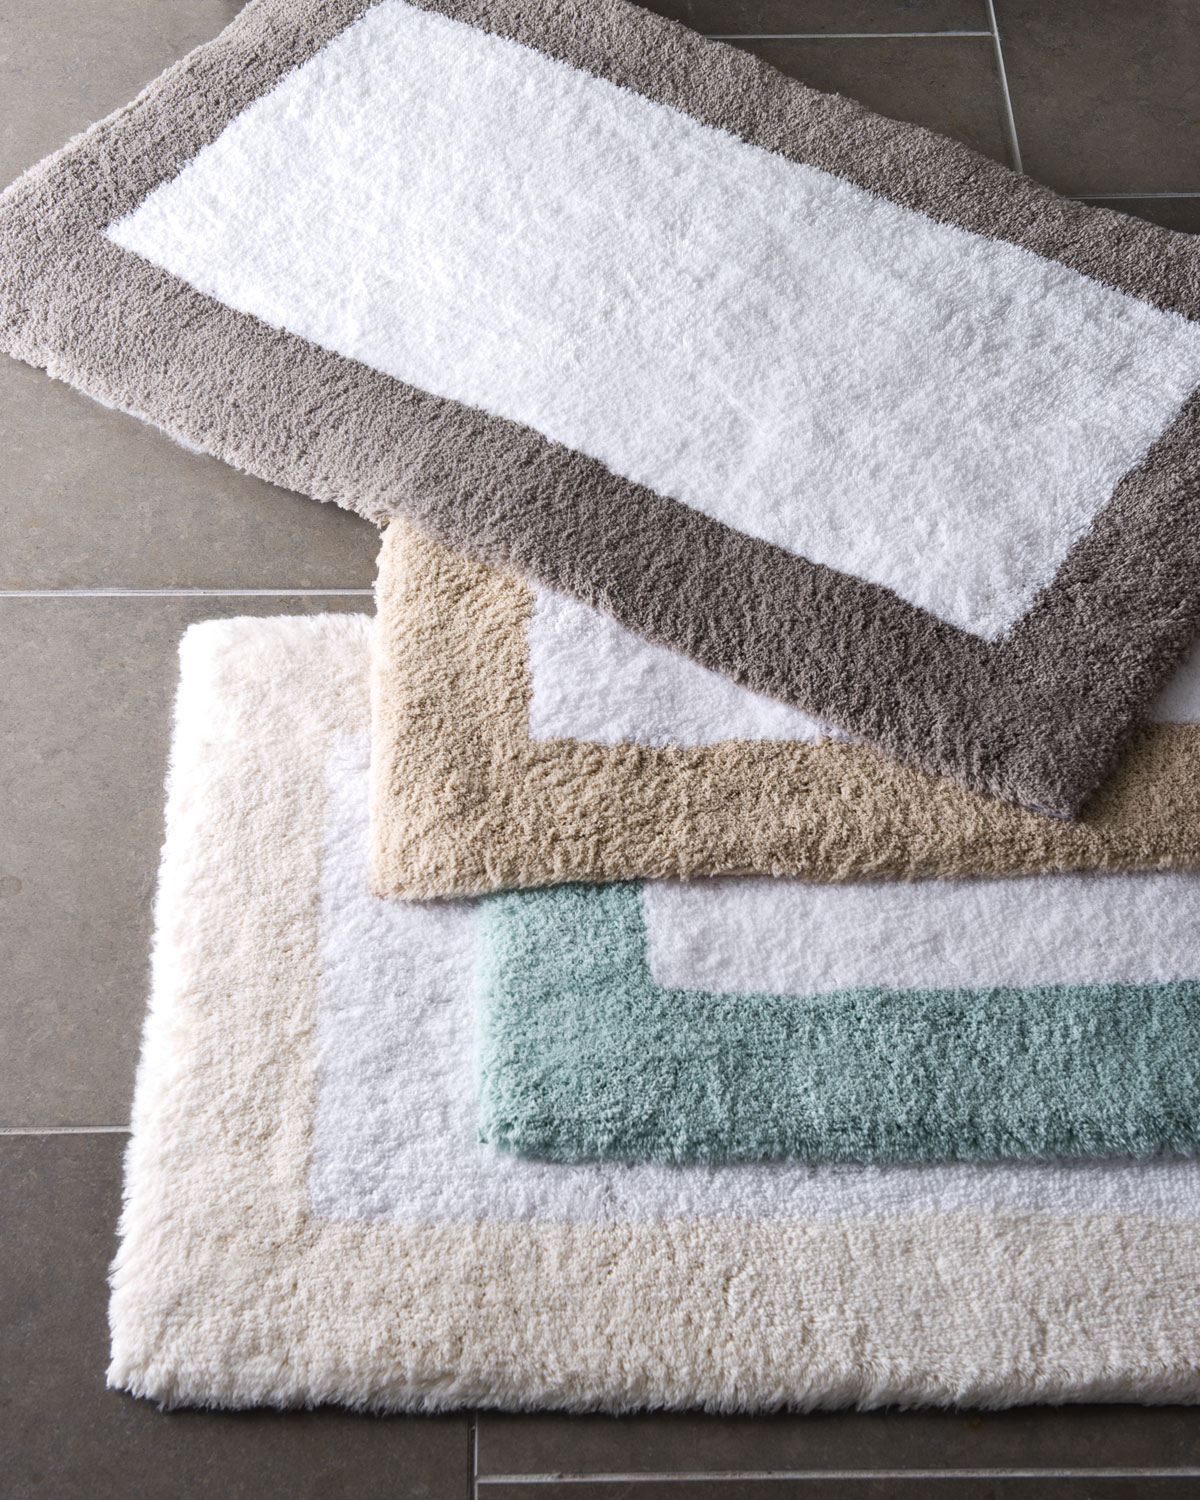 pin tangiers design home dena style bath coastal rhythms rug